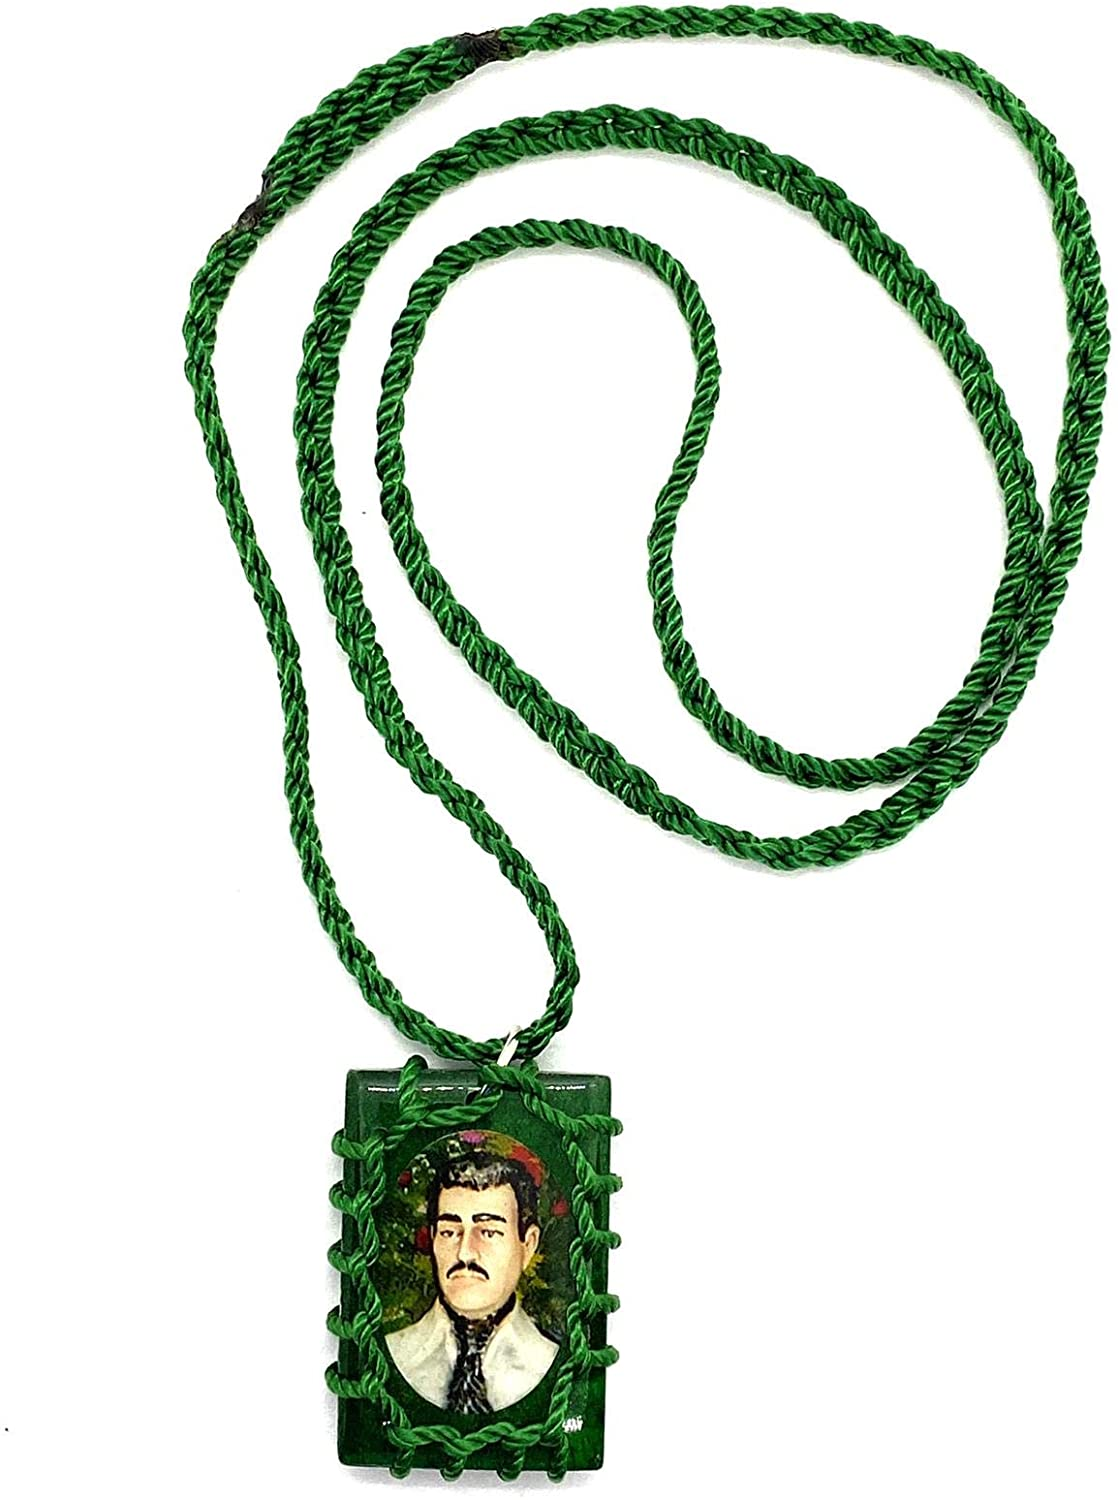 Paradise_Shopping Jesus Malverde Wood Escapulario Negro Narco Saint Square Black Pendant Charm Necklace